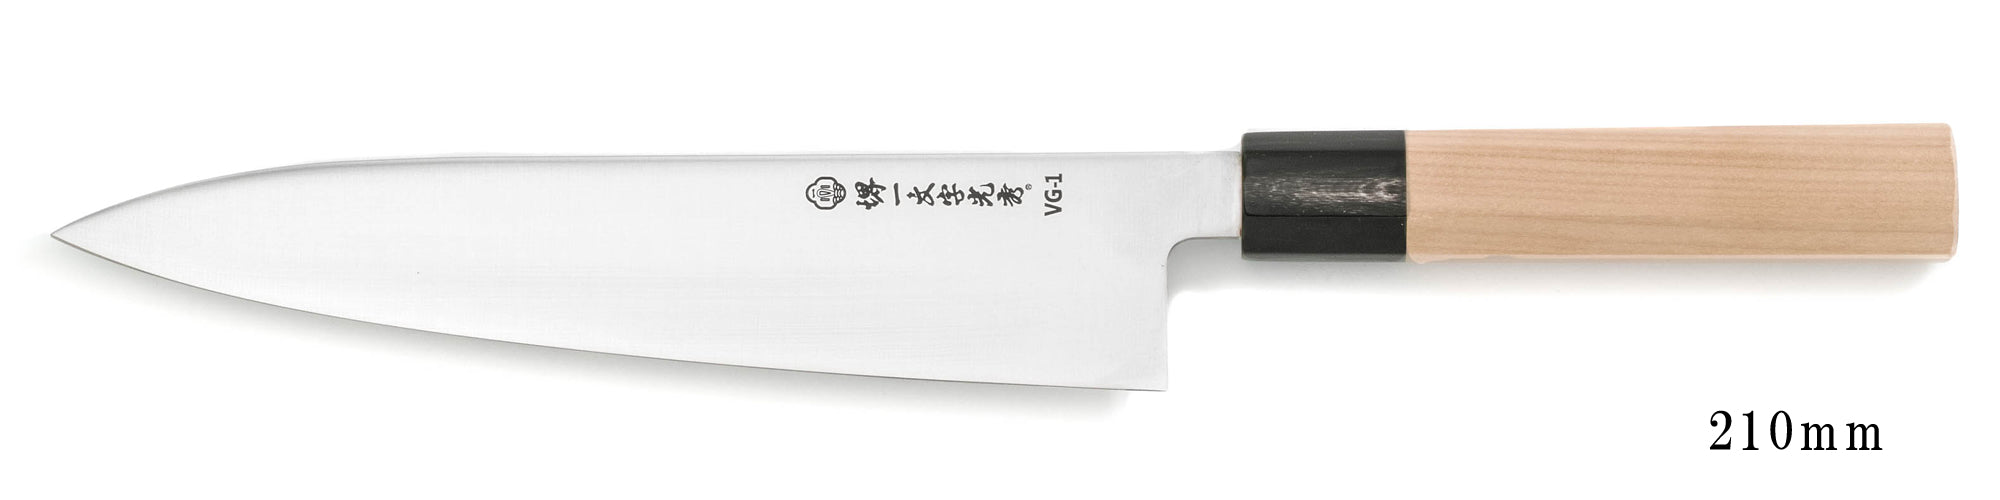 VG-1 WaGyuto (Couteau chef) 210mm